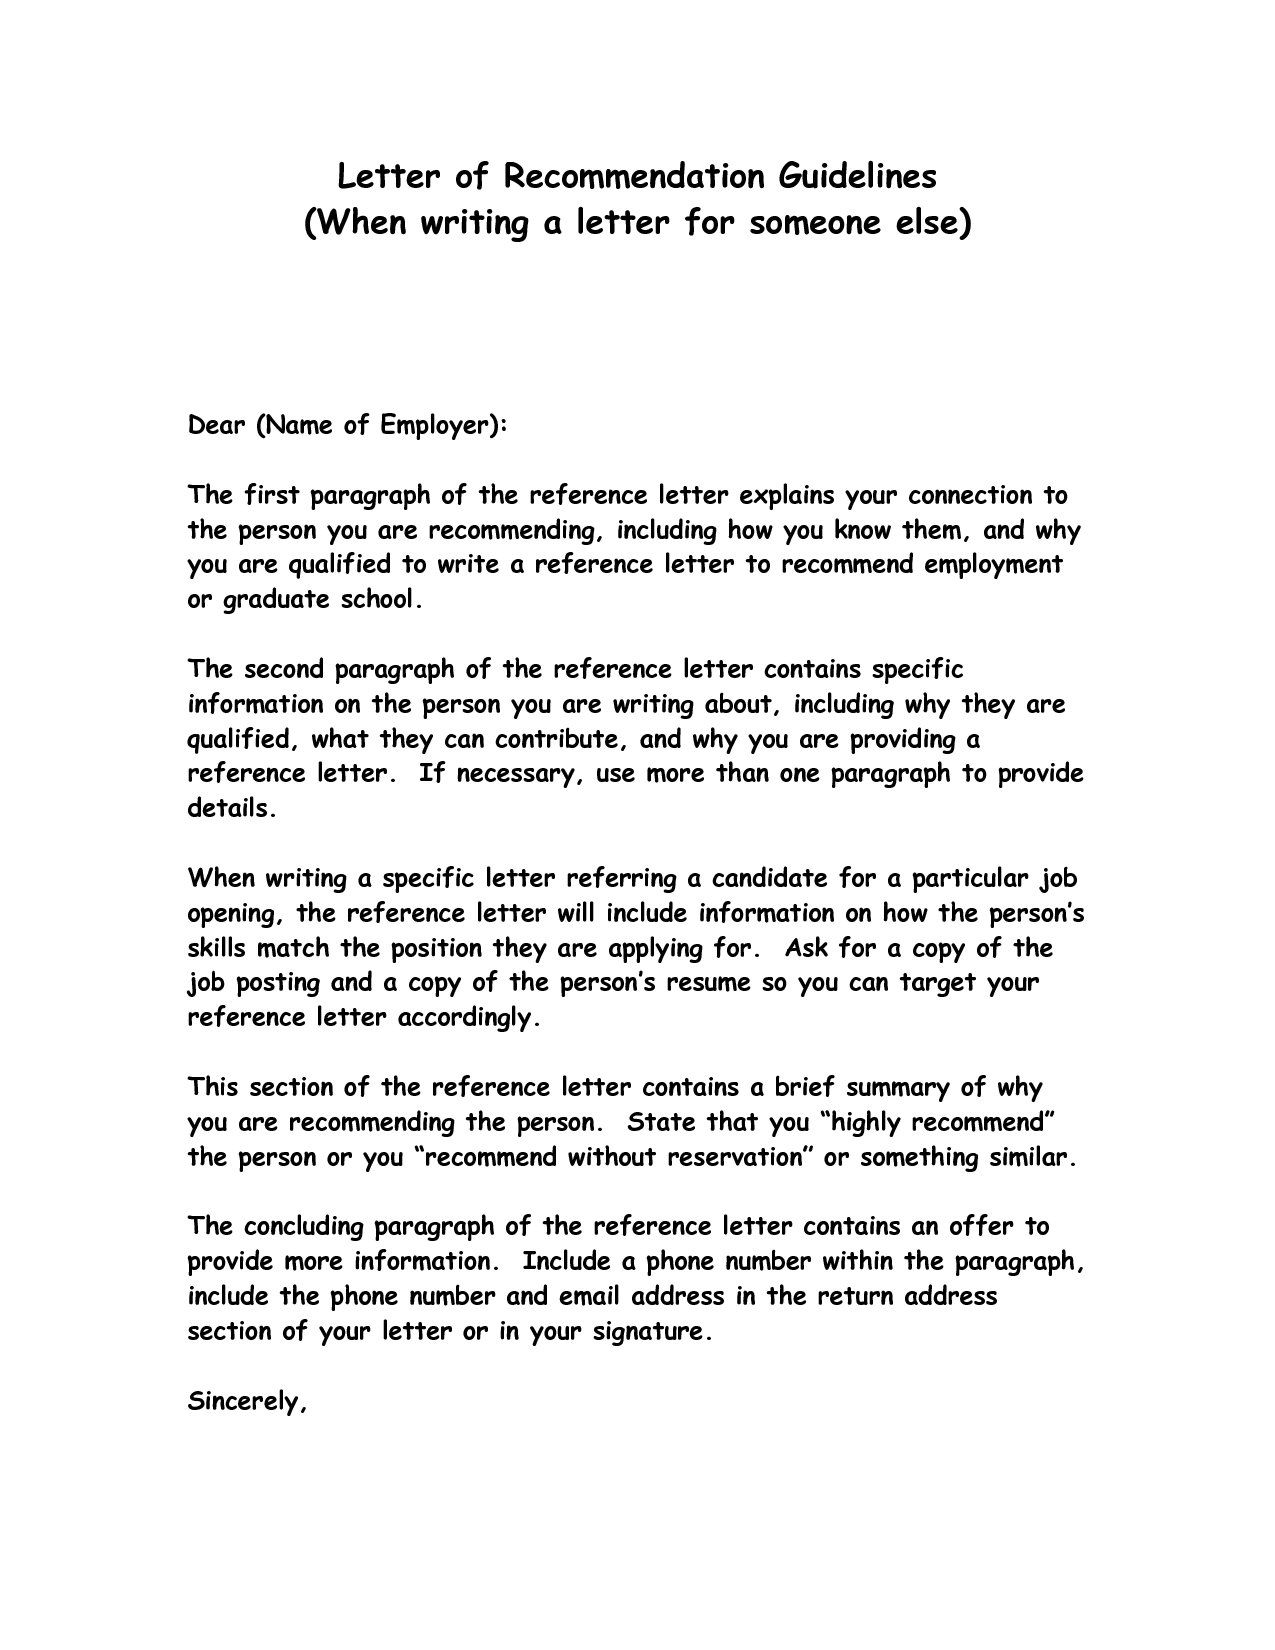 How to write a reference letter letter letter example how to write a reference letter letter mitanshu Choice Image